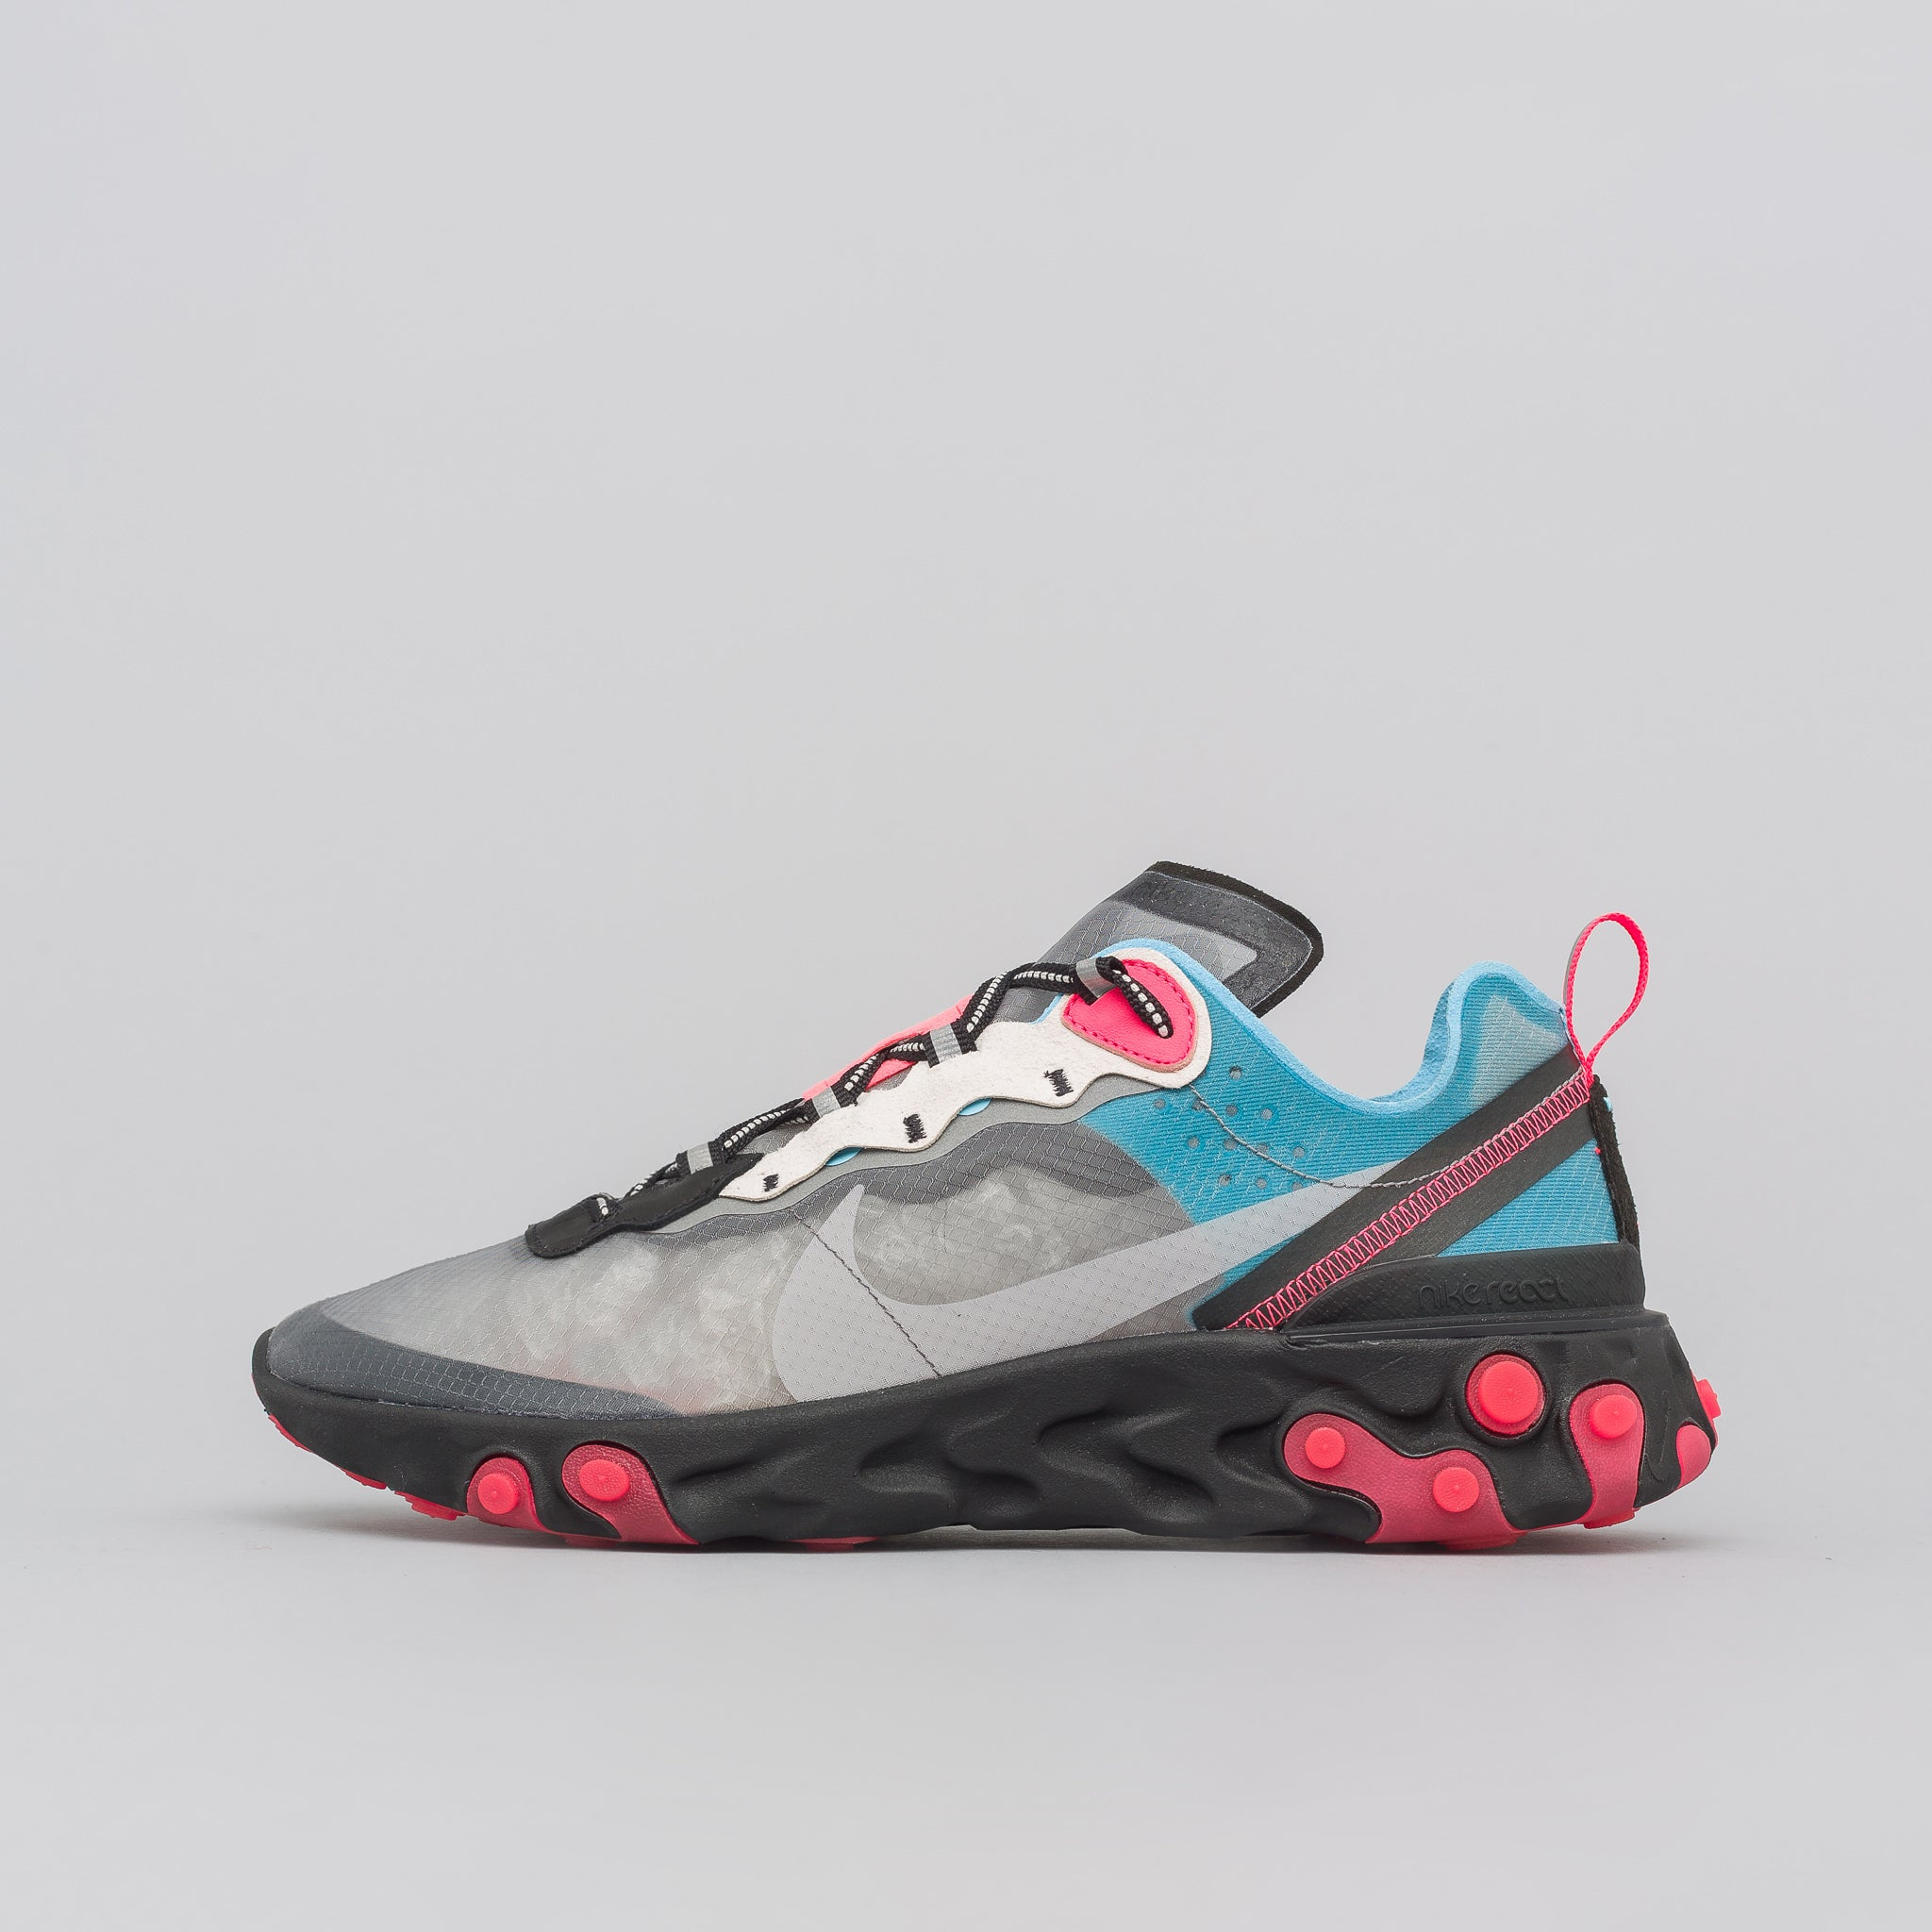 React Element 87 in Black/Cool Grey/Blue Chill